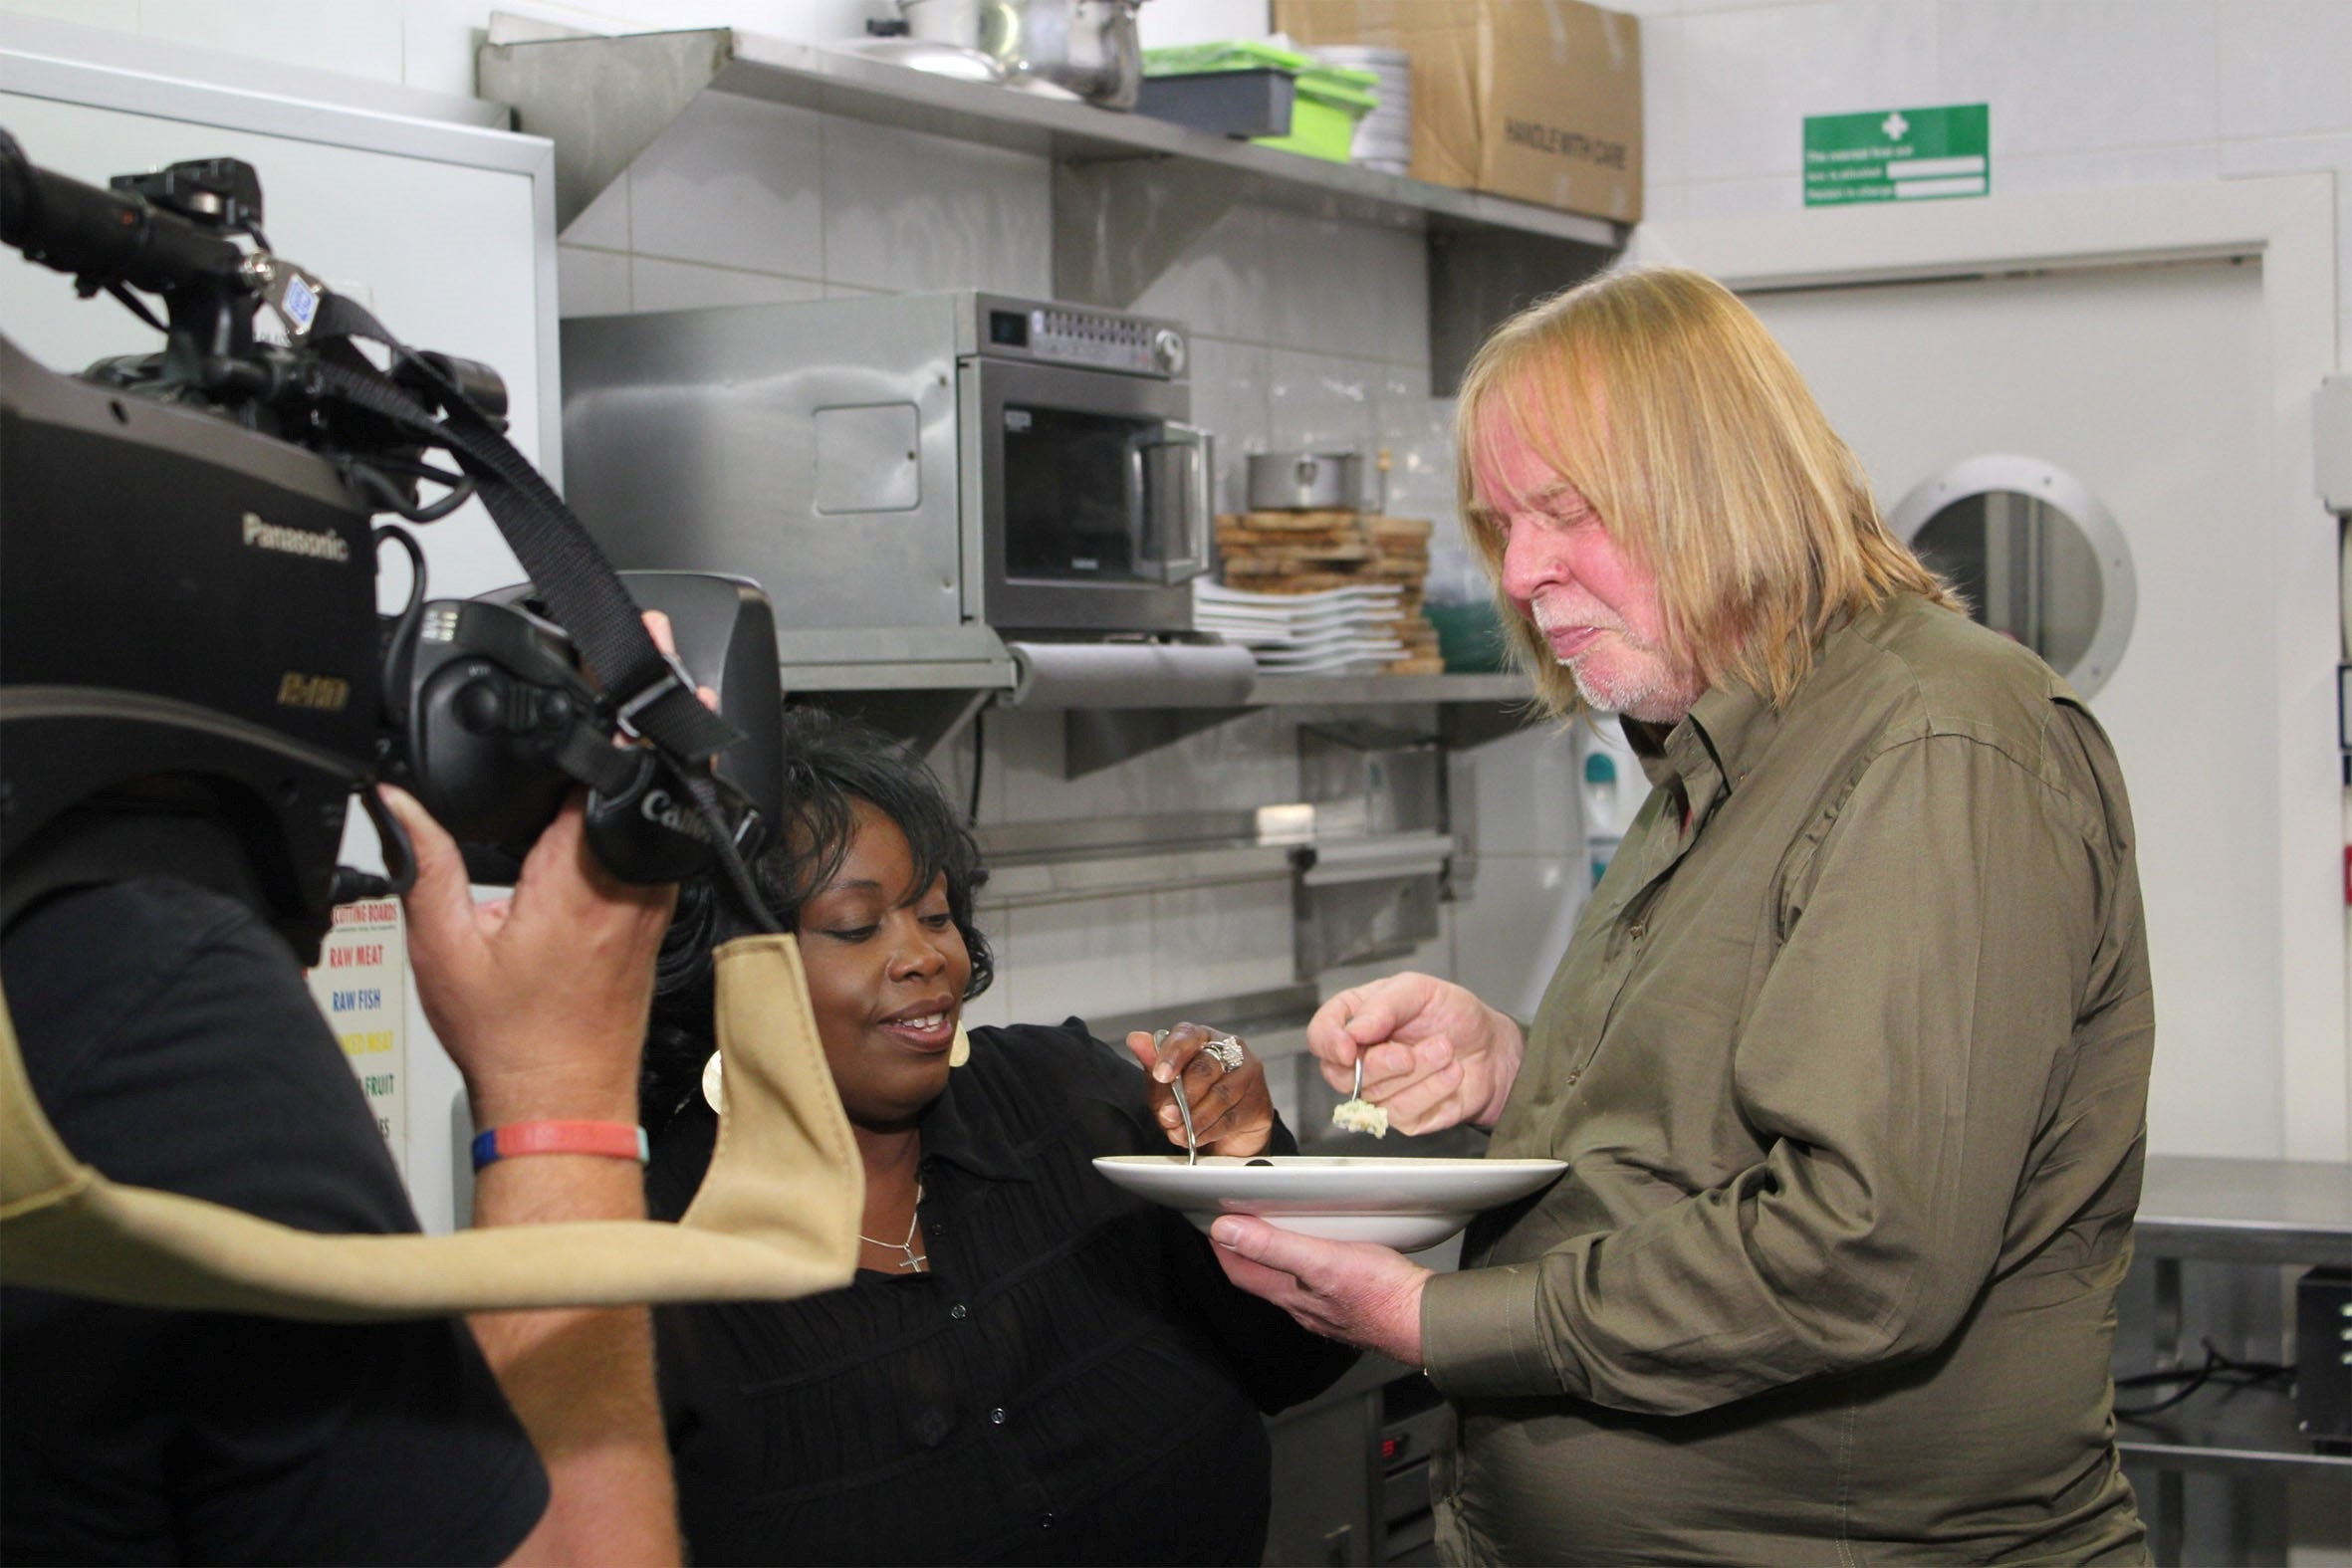 Rick Wakeman and singer Ruby Turner filming the pilot episode of Soundbites